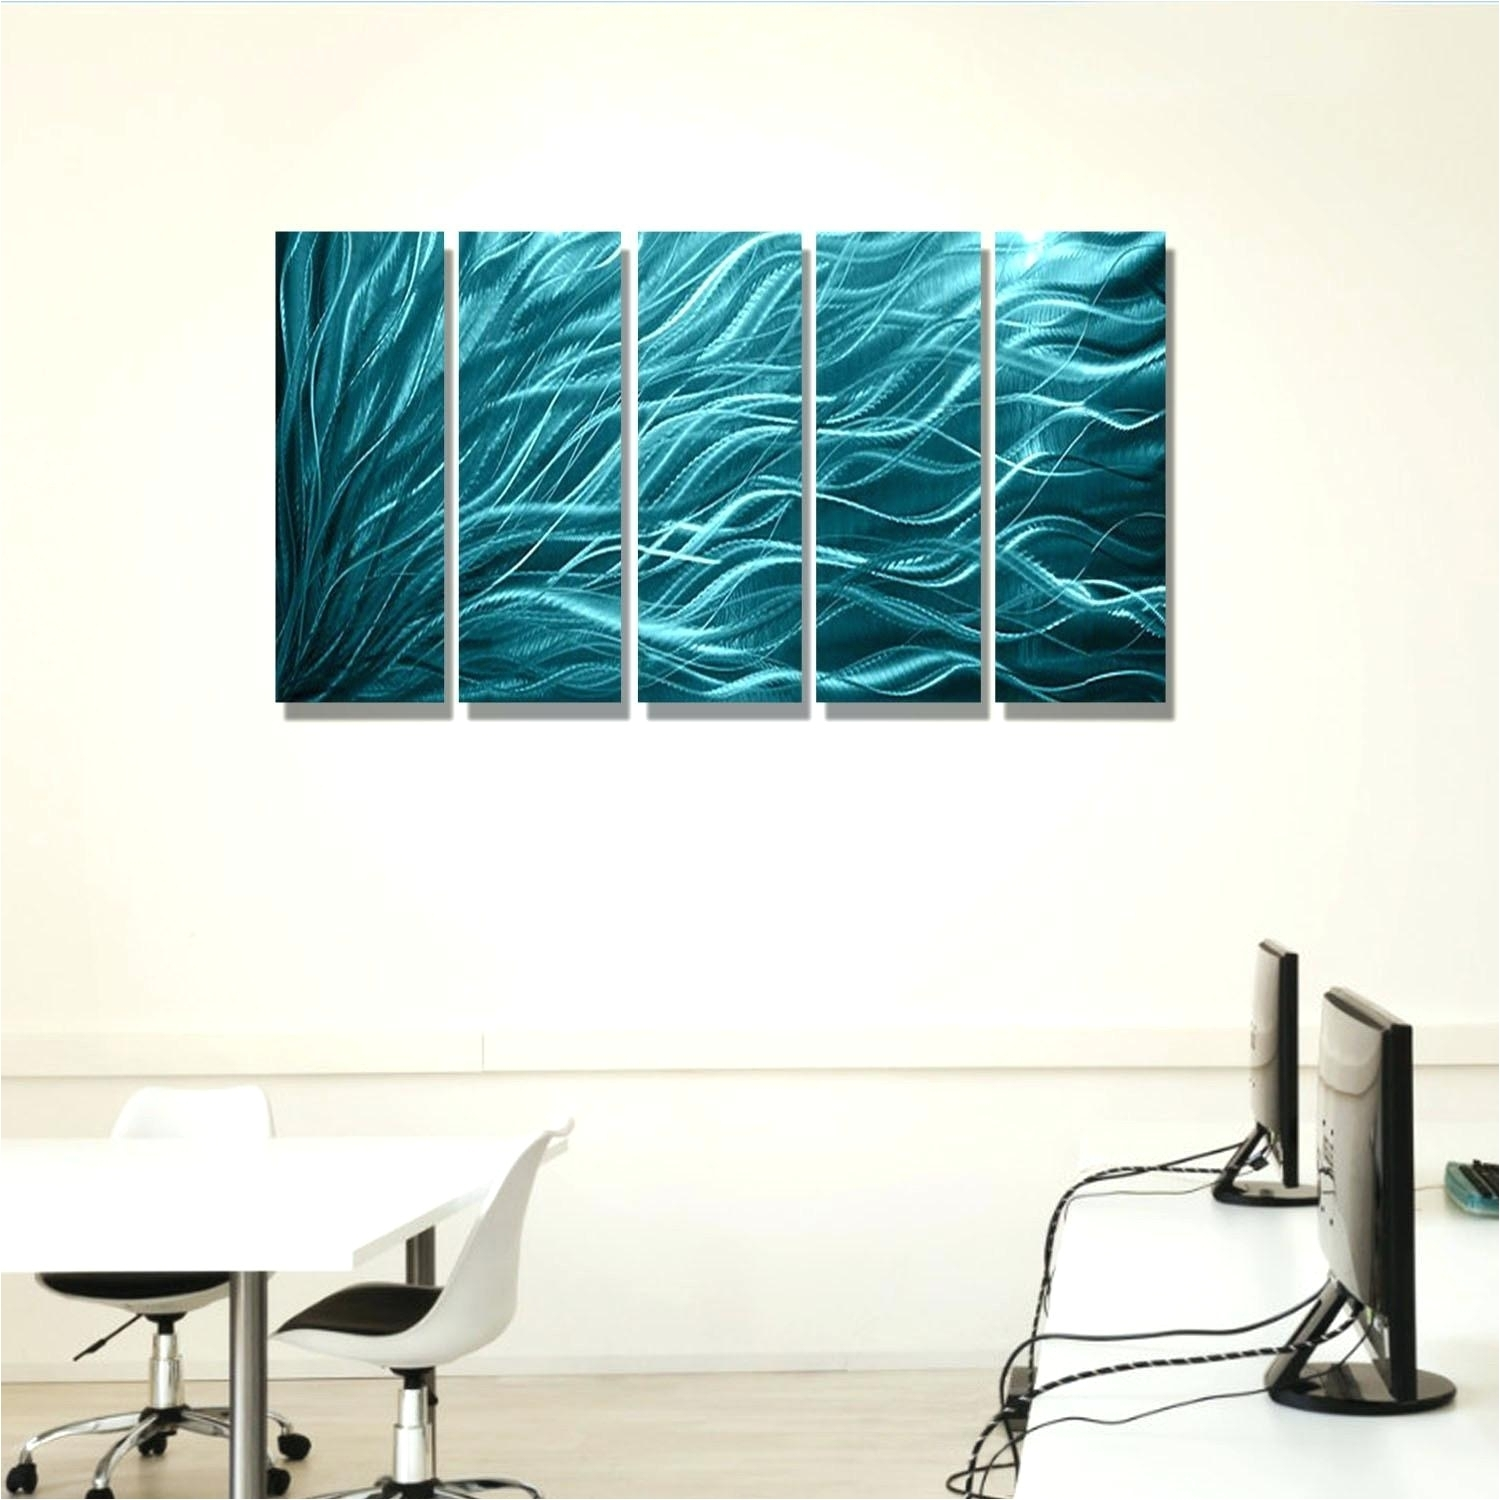 Large Decorative Jacks 60 Luxury Contemporary Wall Art For Living Intended For Large Contemporary Wall Art (View 17 of 20)